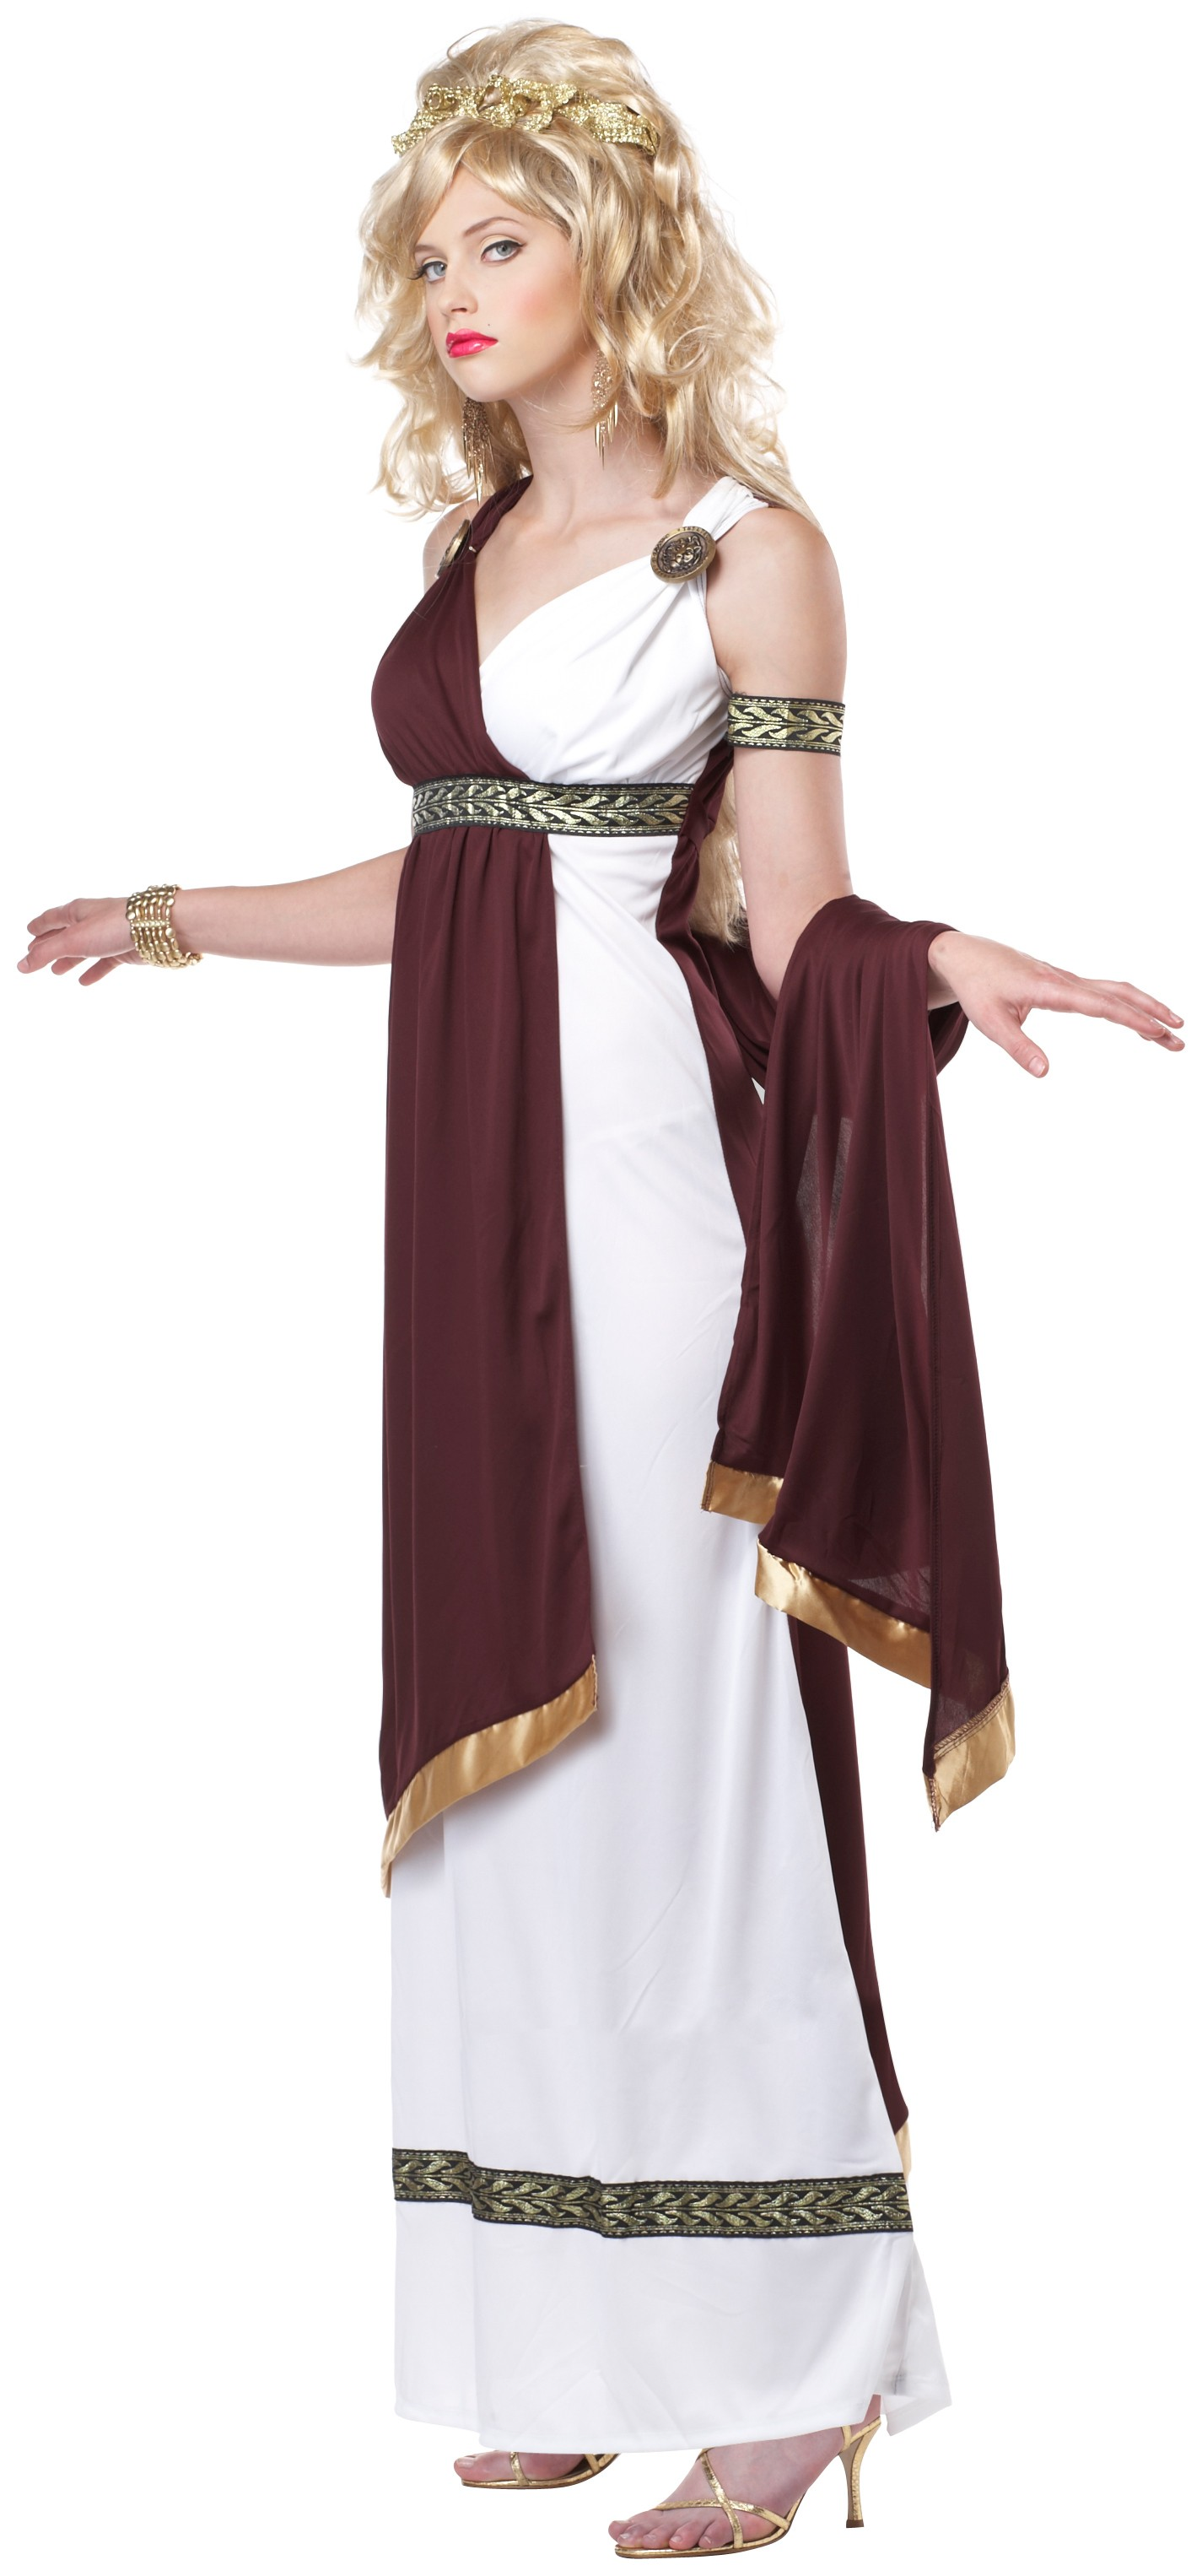 0379997d250 Roman Empress Adult Women s Costume.jpg.  mouseover to enlarge